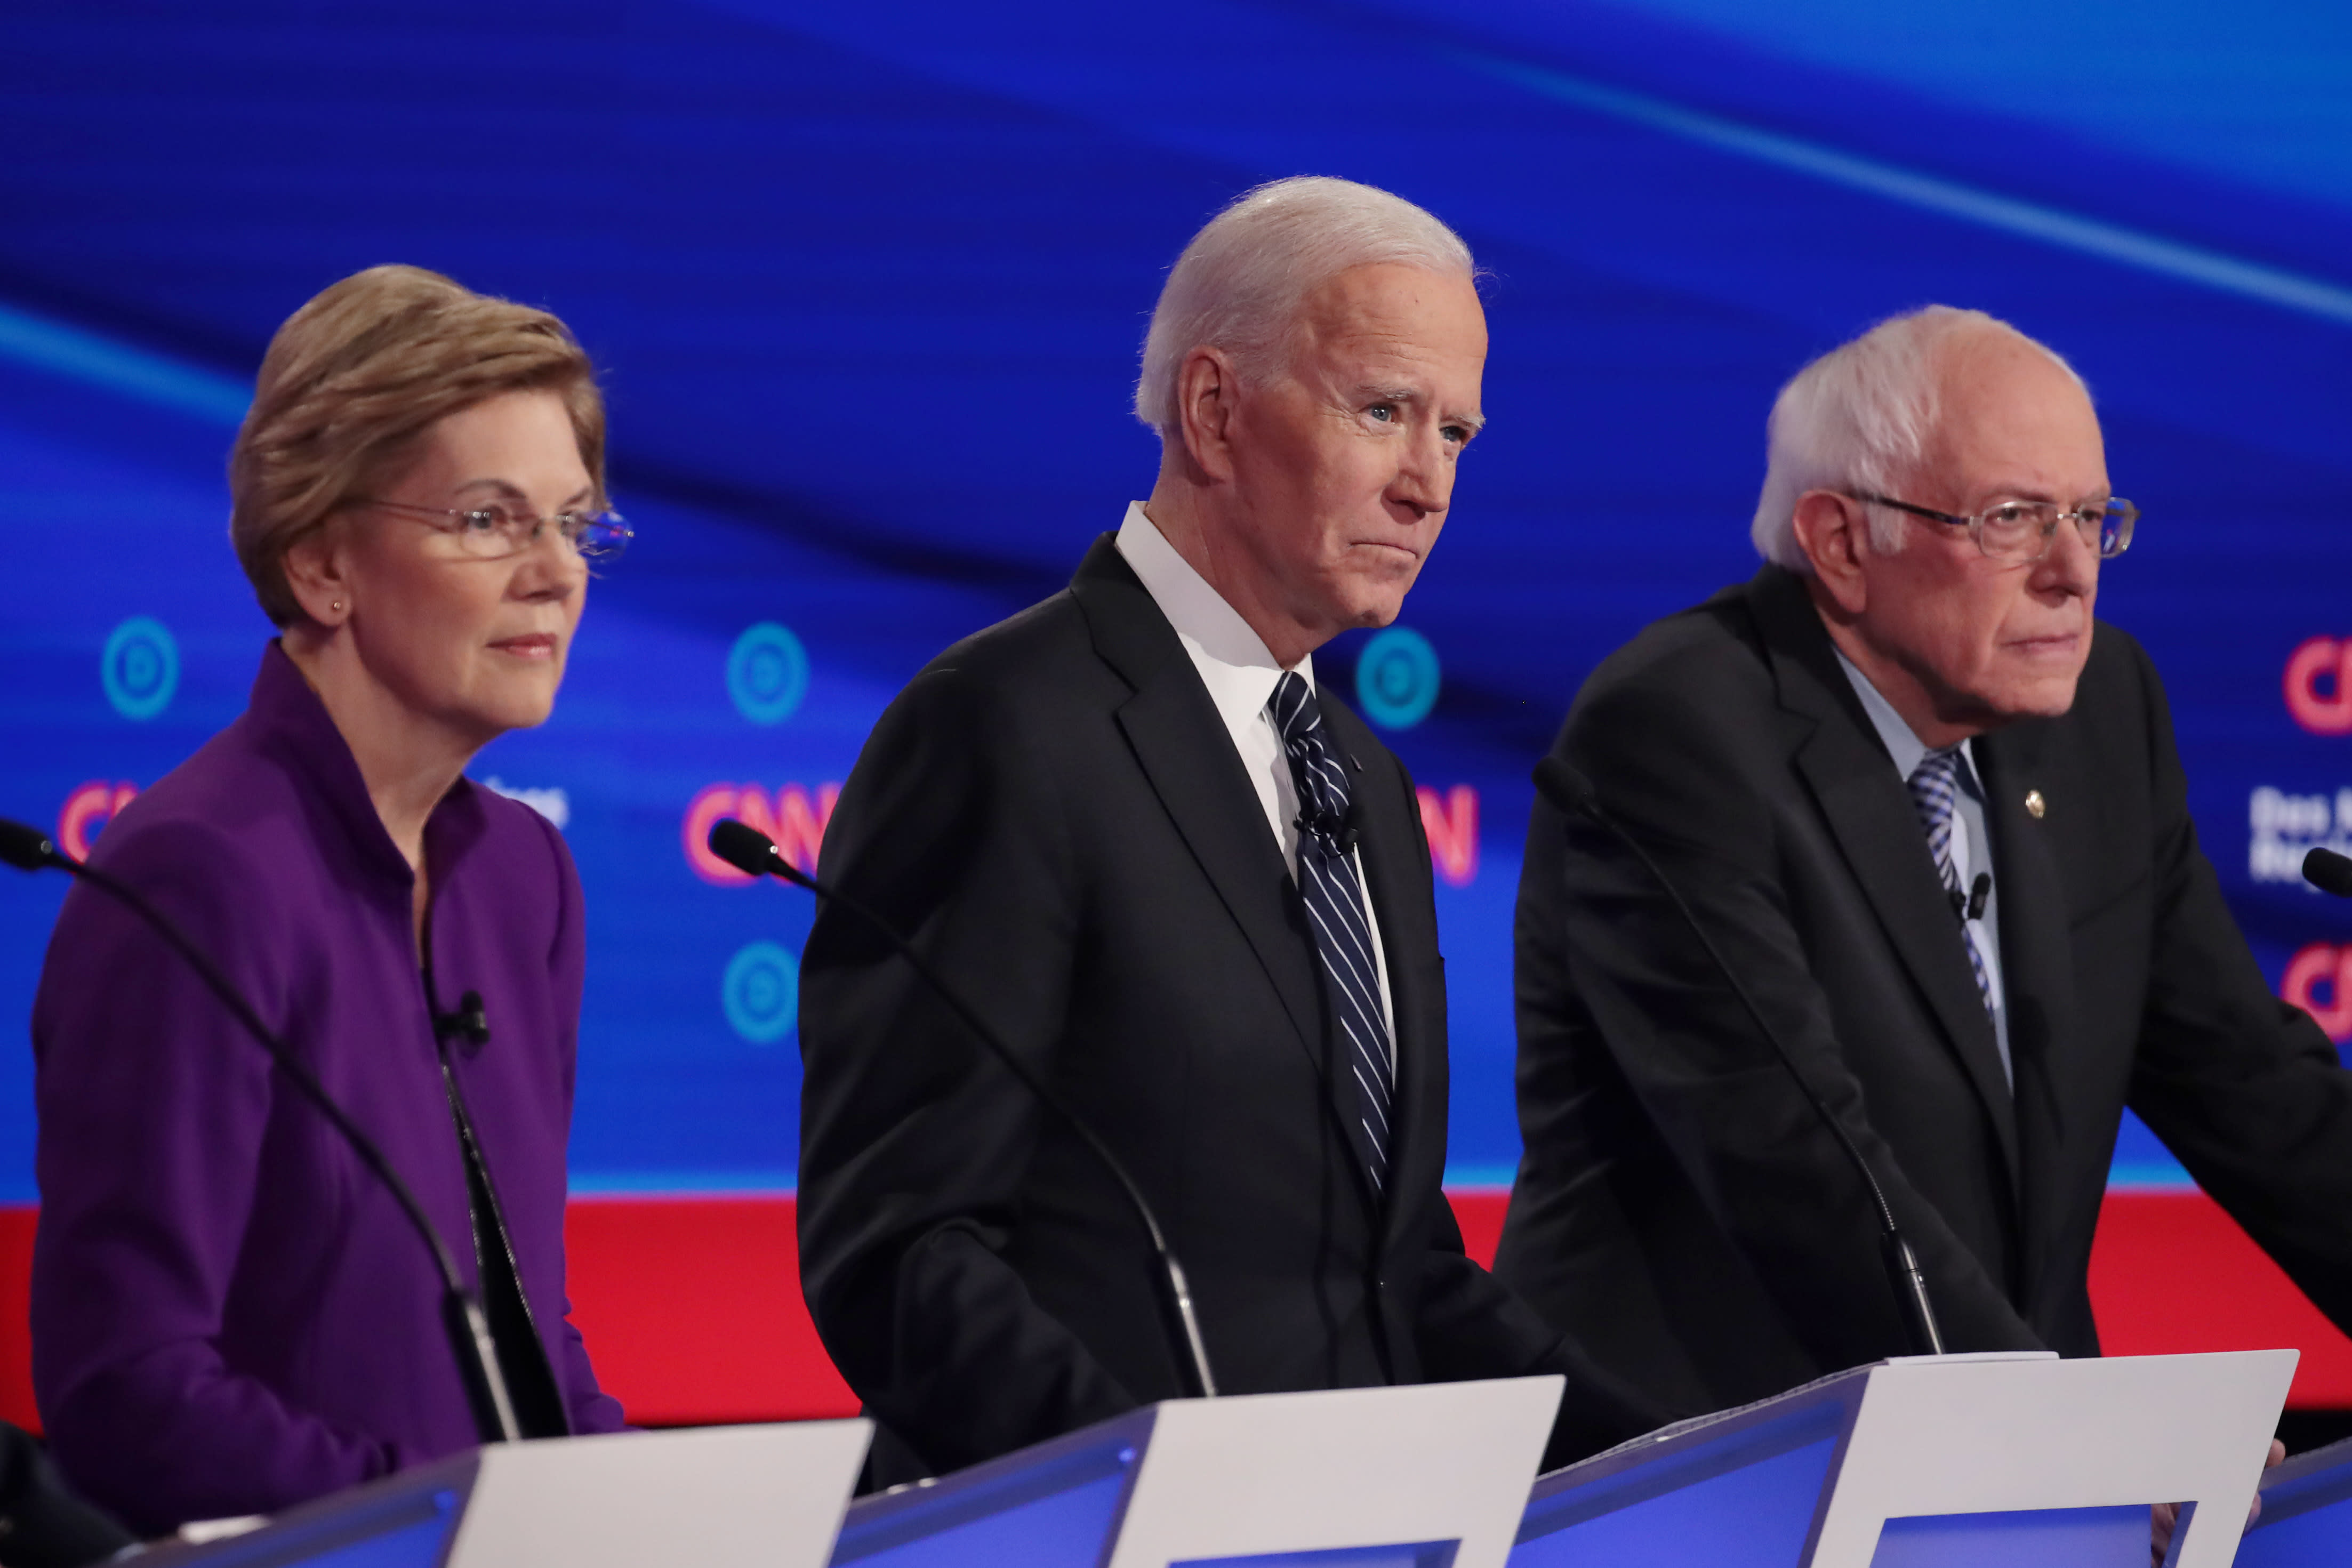 OpEd: Why Democrats may not need an exciting candidate to drive voter turnout in 2020